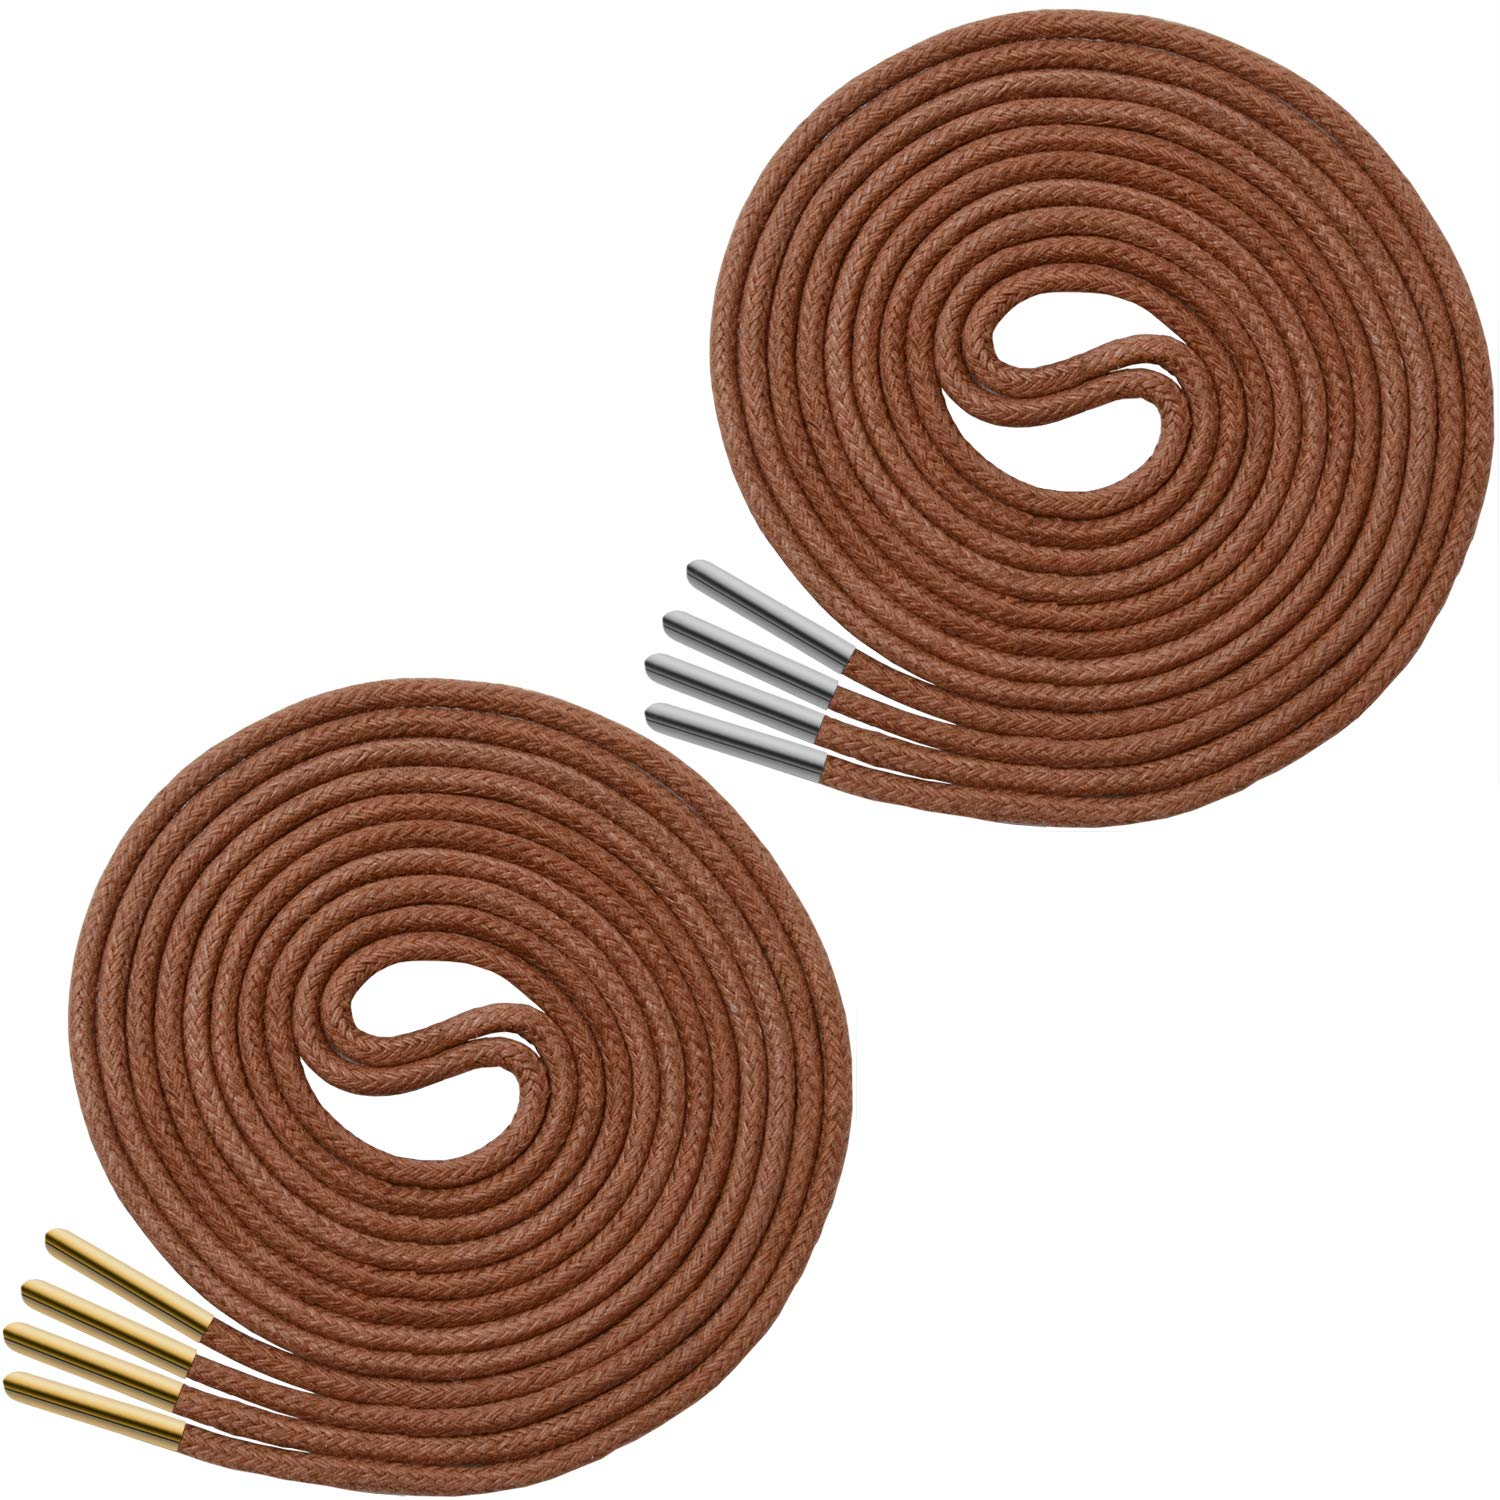 Miscly Waxed Thin Round Dress Shoelaces With Metal Tips - 3/32'' Thick (36'' Brown)